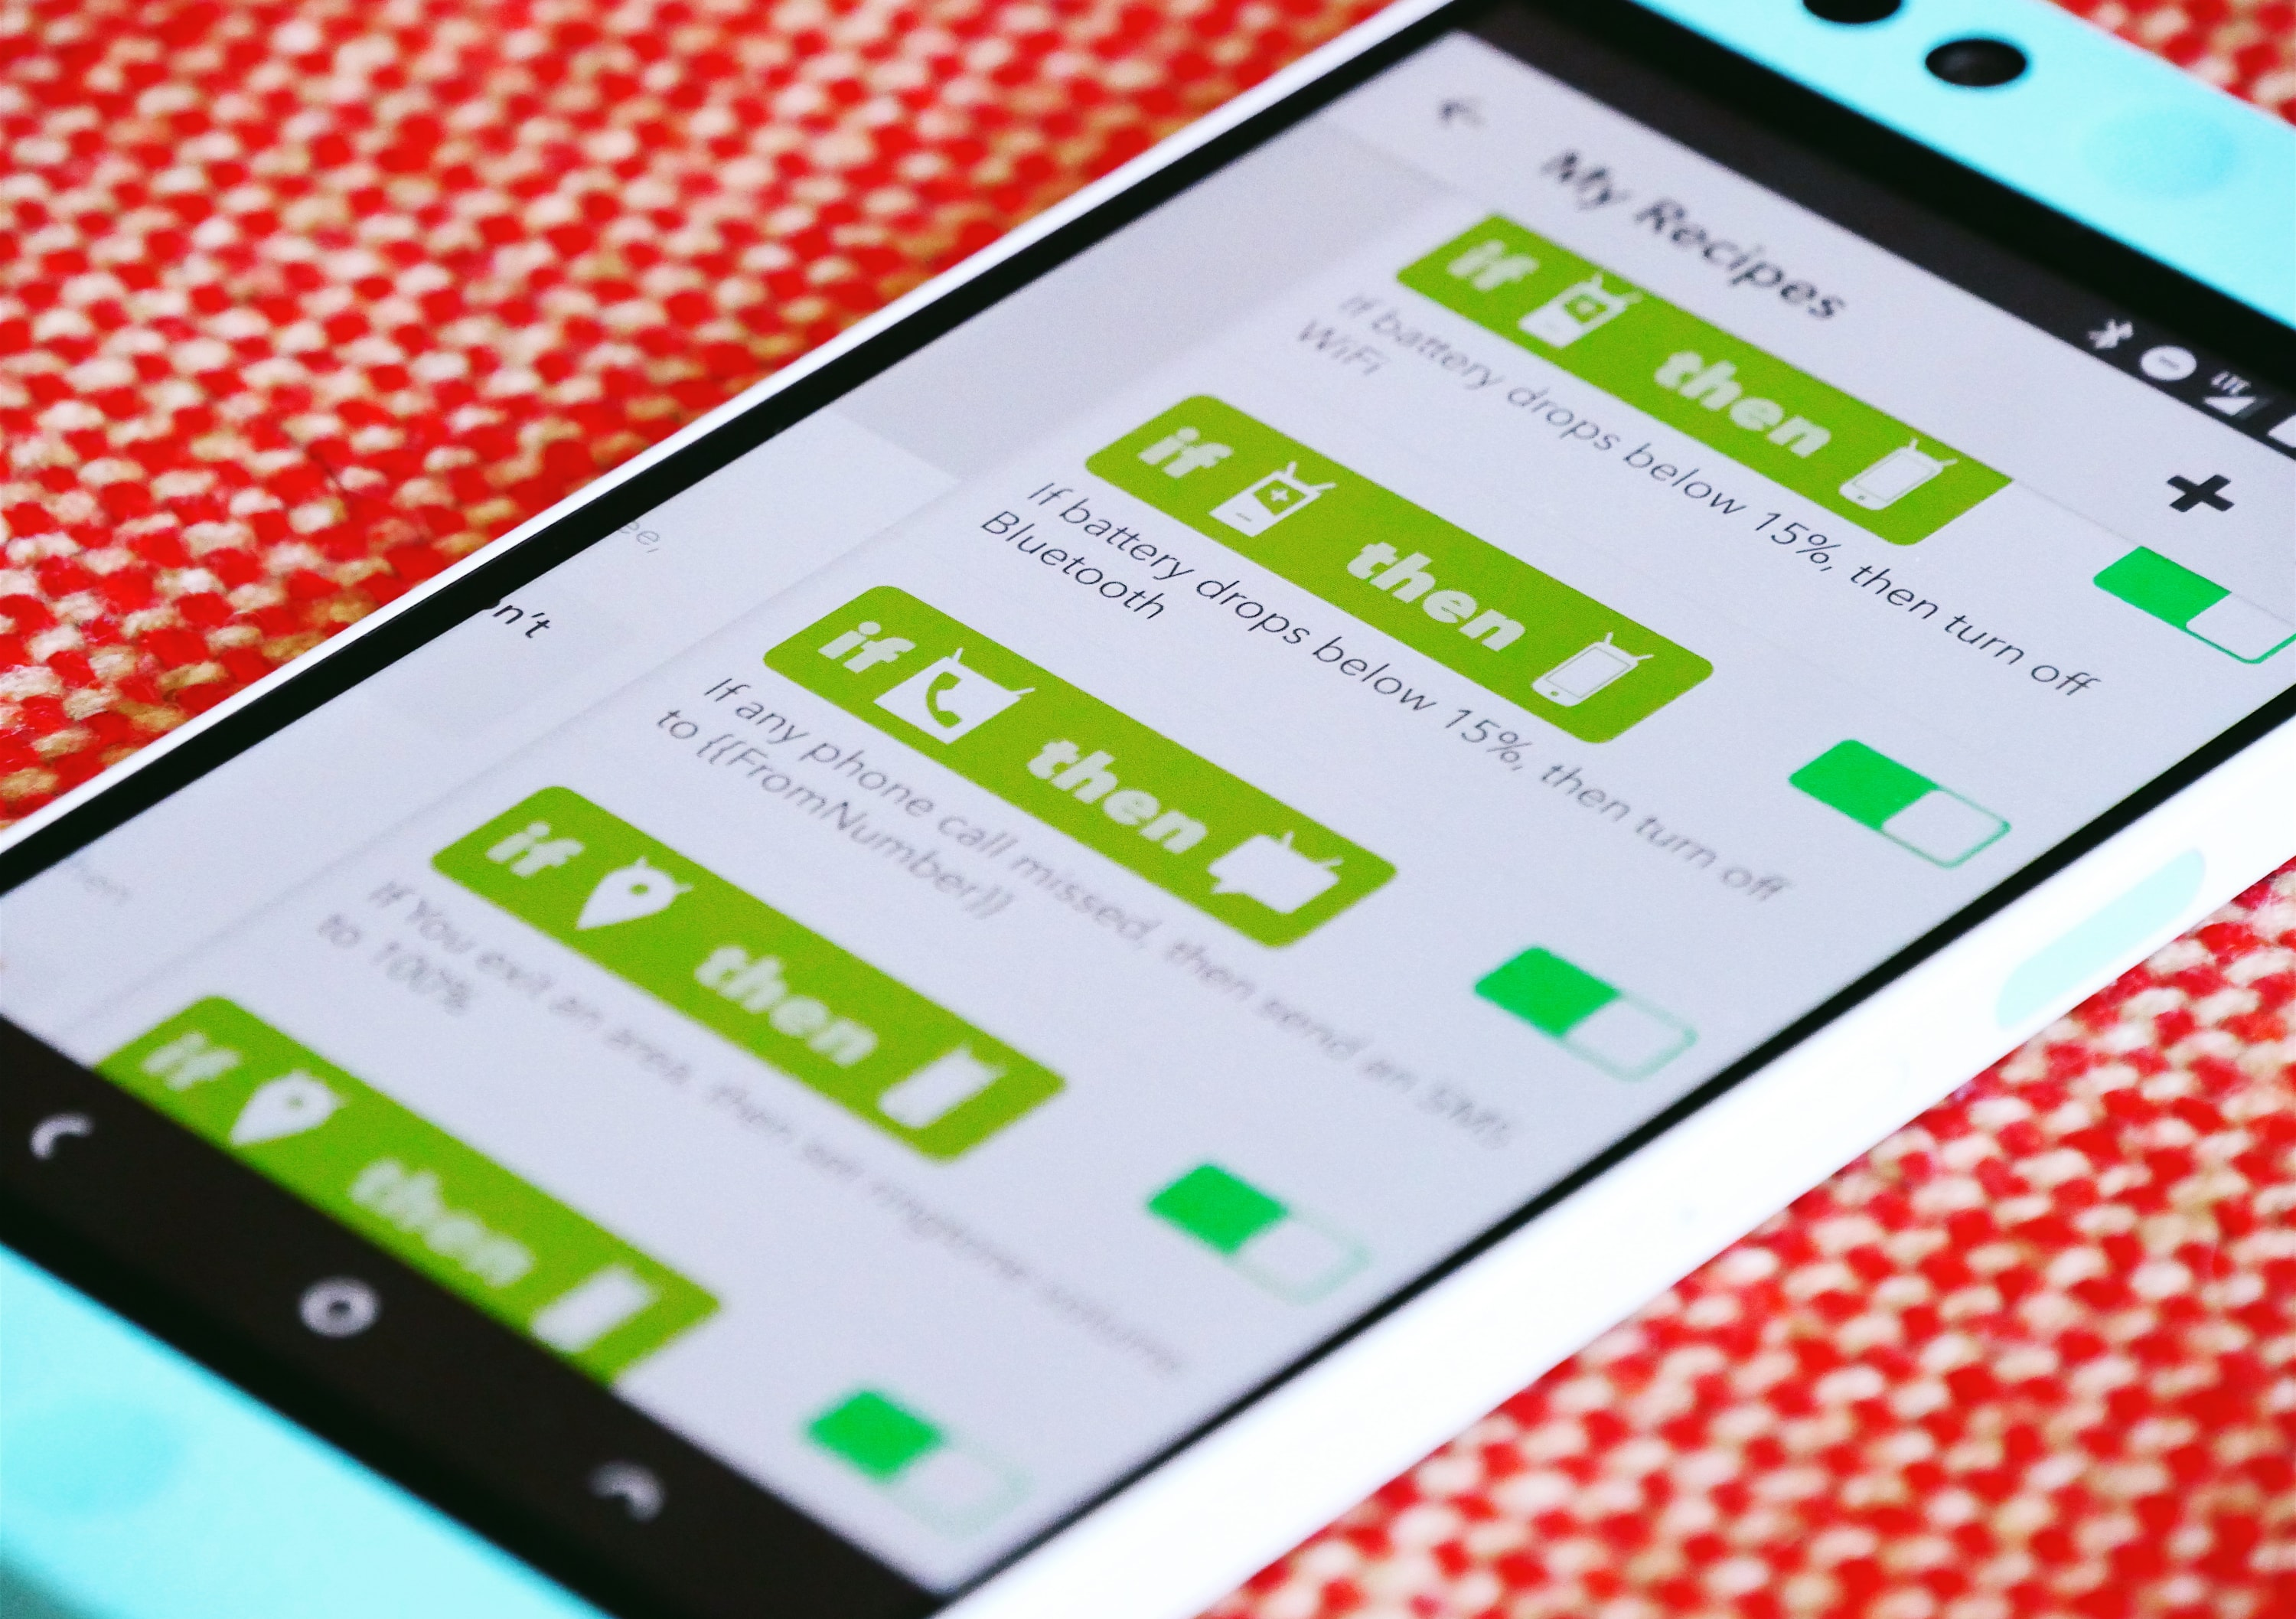 8 essential IFTTT recipes for every Android user